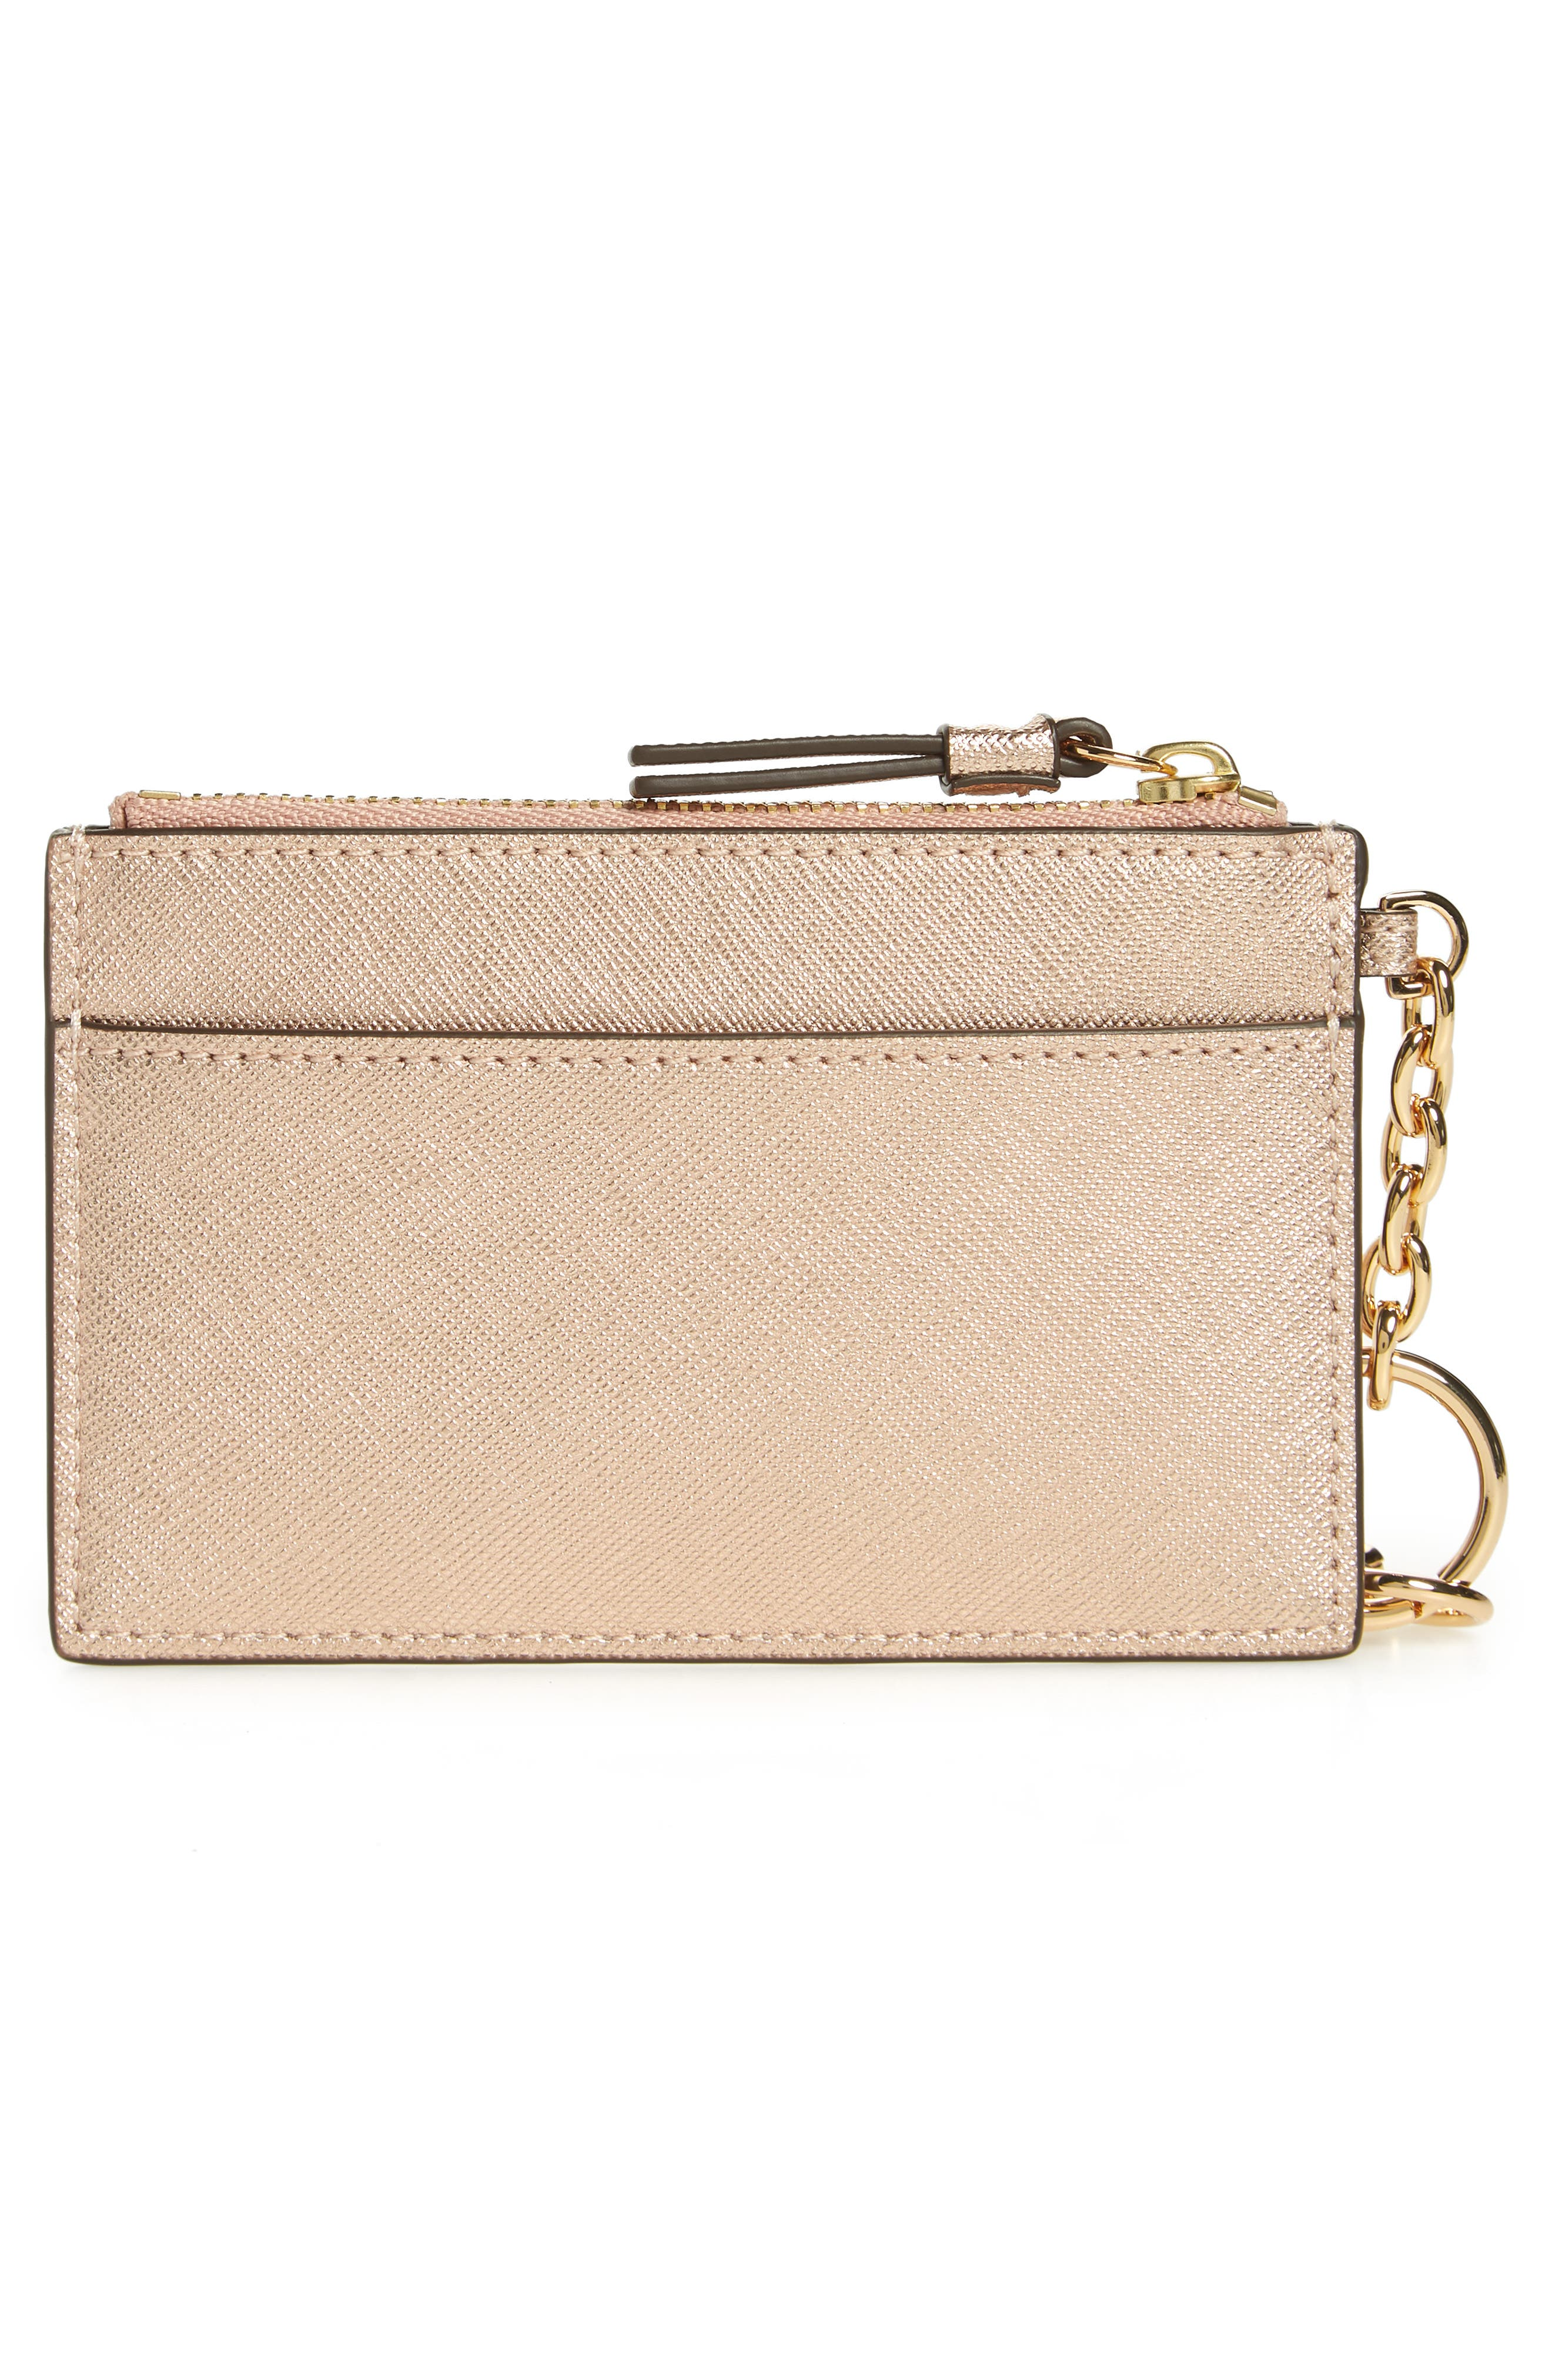 Robinson Metallic Leather Card Case with Key Chain,                             Alternate thumbnail 3, color,                             650